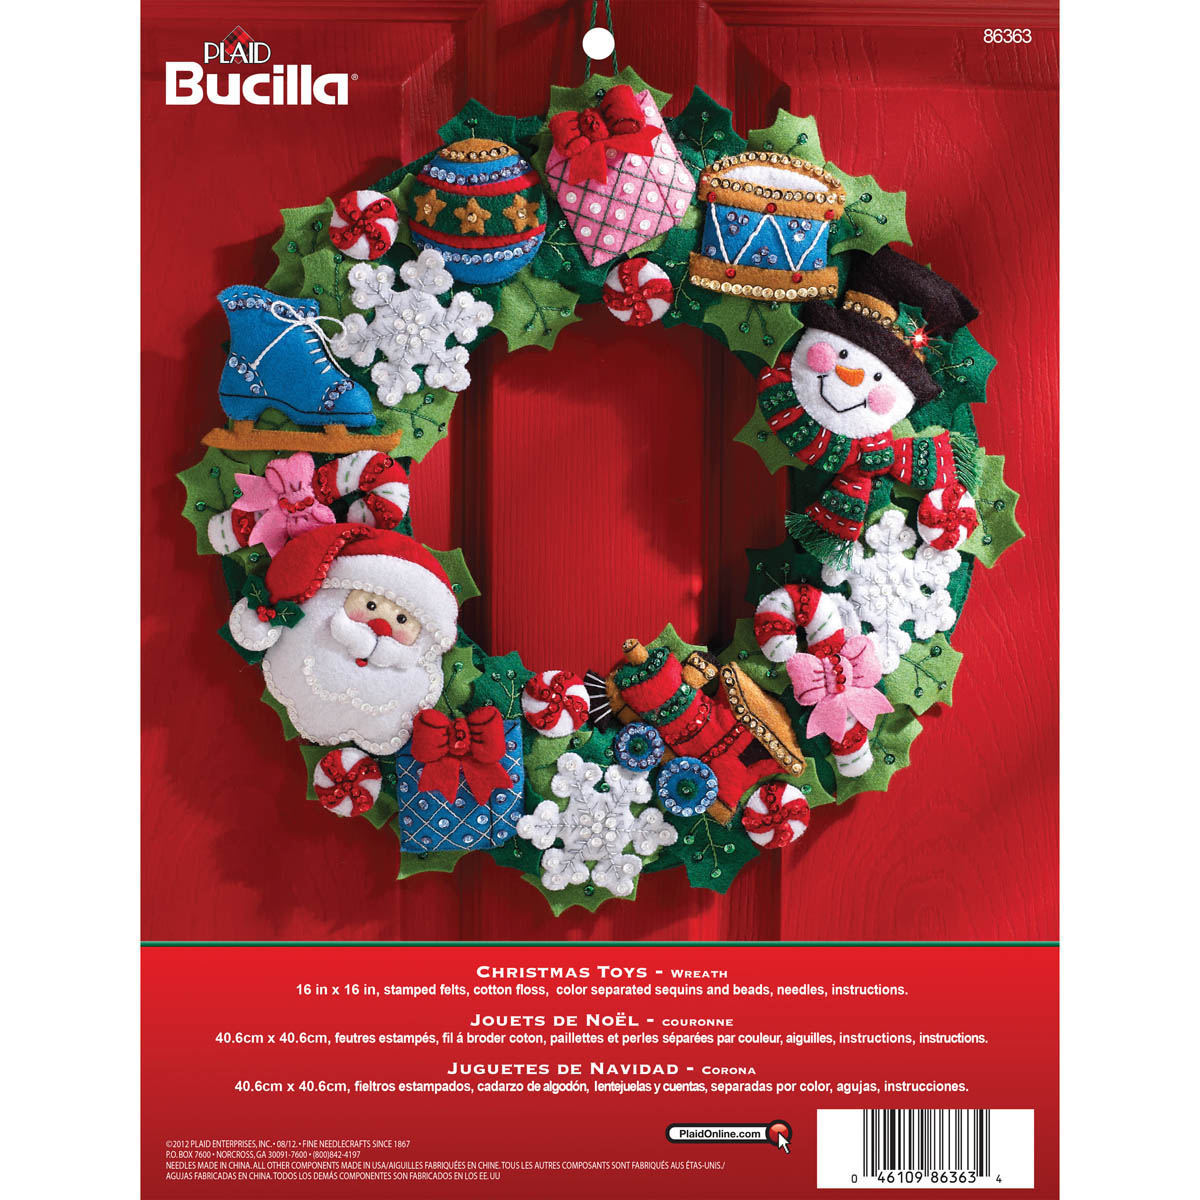 Bucilla ® Seasonal - Felt - Home Decor - Christmas Toys Wreath - 86363